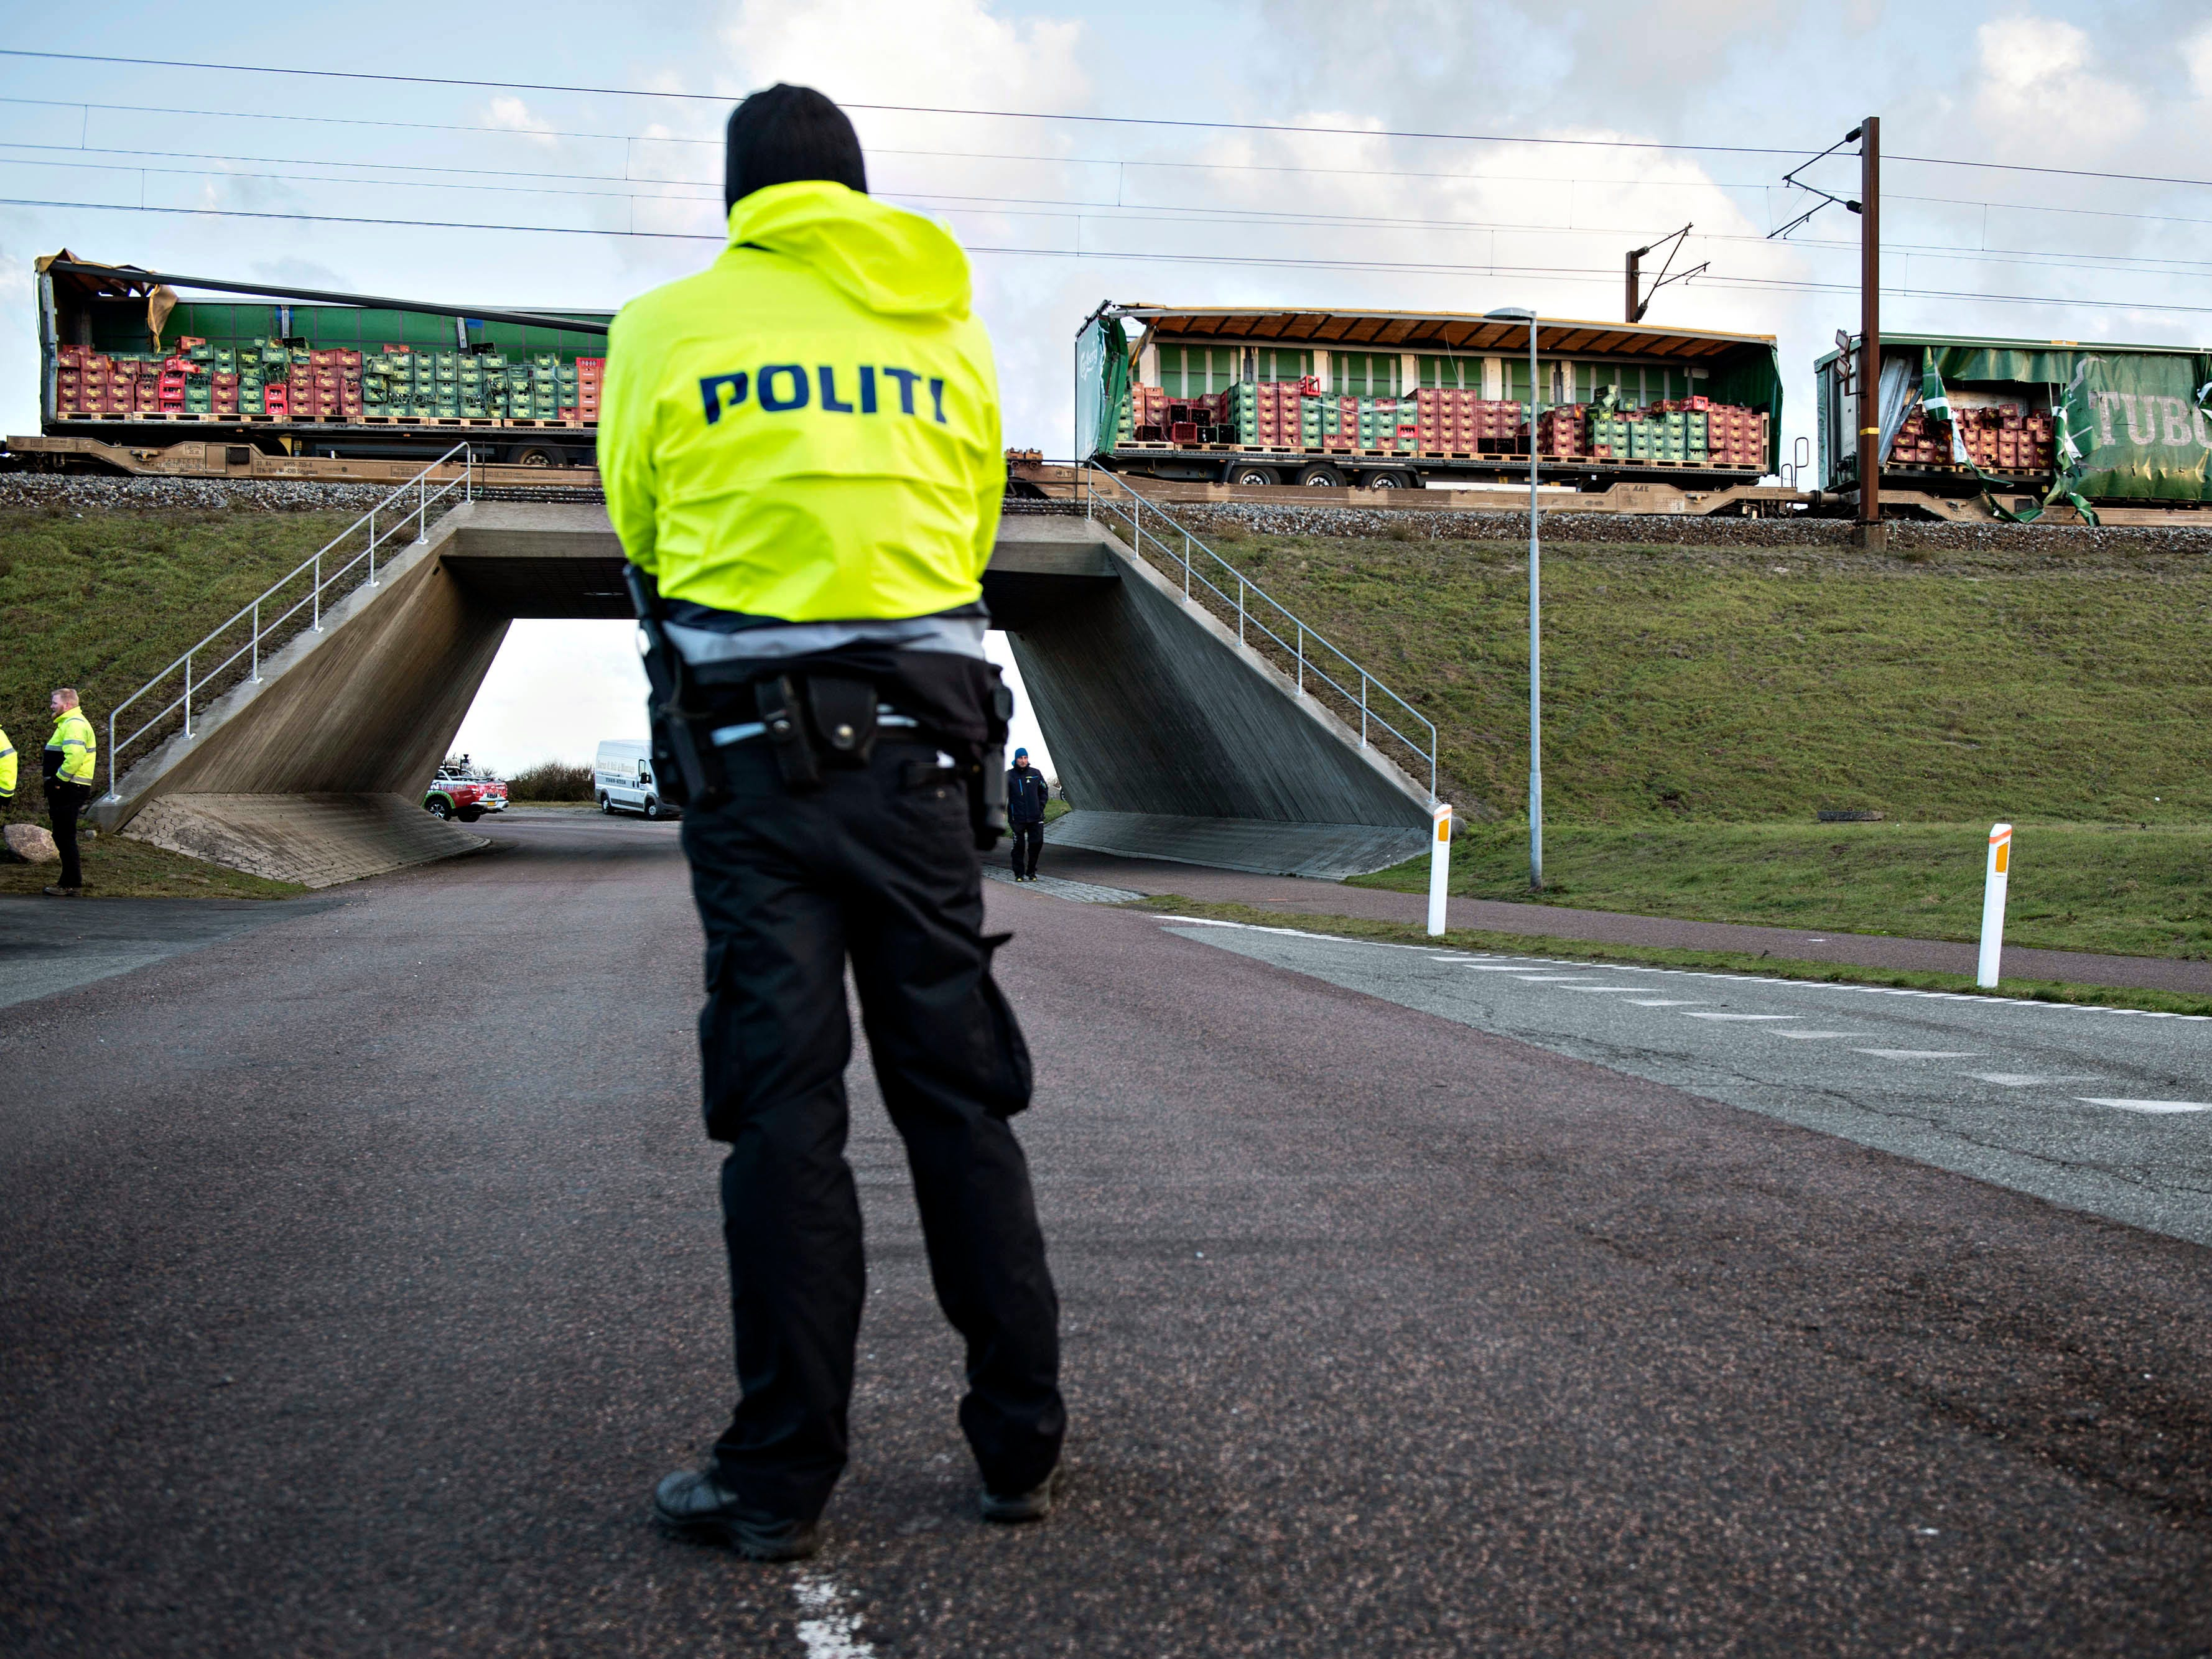 "A police stands guard near the scene of a train accident, on the Great Belt Bridge, in Nyborg, Denmark,  Wednesday, Jan. 2,  2019.  At least six people were killed in a train accident early Wednesday on a Danish bridge linking the central islands of Zealand and Funen, according to the rail operator. Authorities said several others were injured. Police spokesman Arne Gram said the passenger train ""hit an unknown object,"" but did not further comment. (Michael Bager/Ritzau Scanpix via AP) ORG XMIT: AMB803"